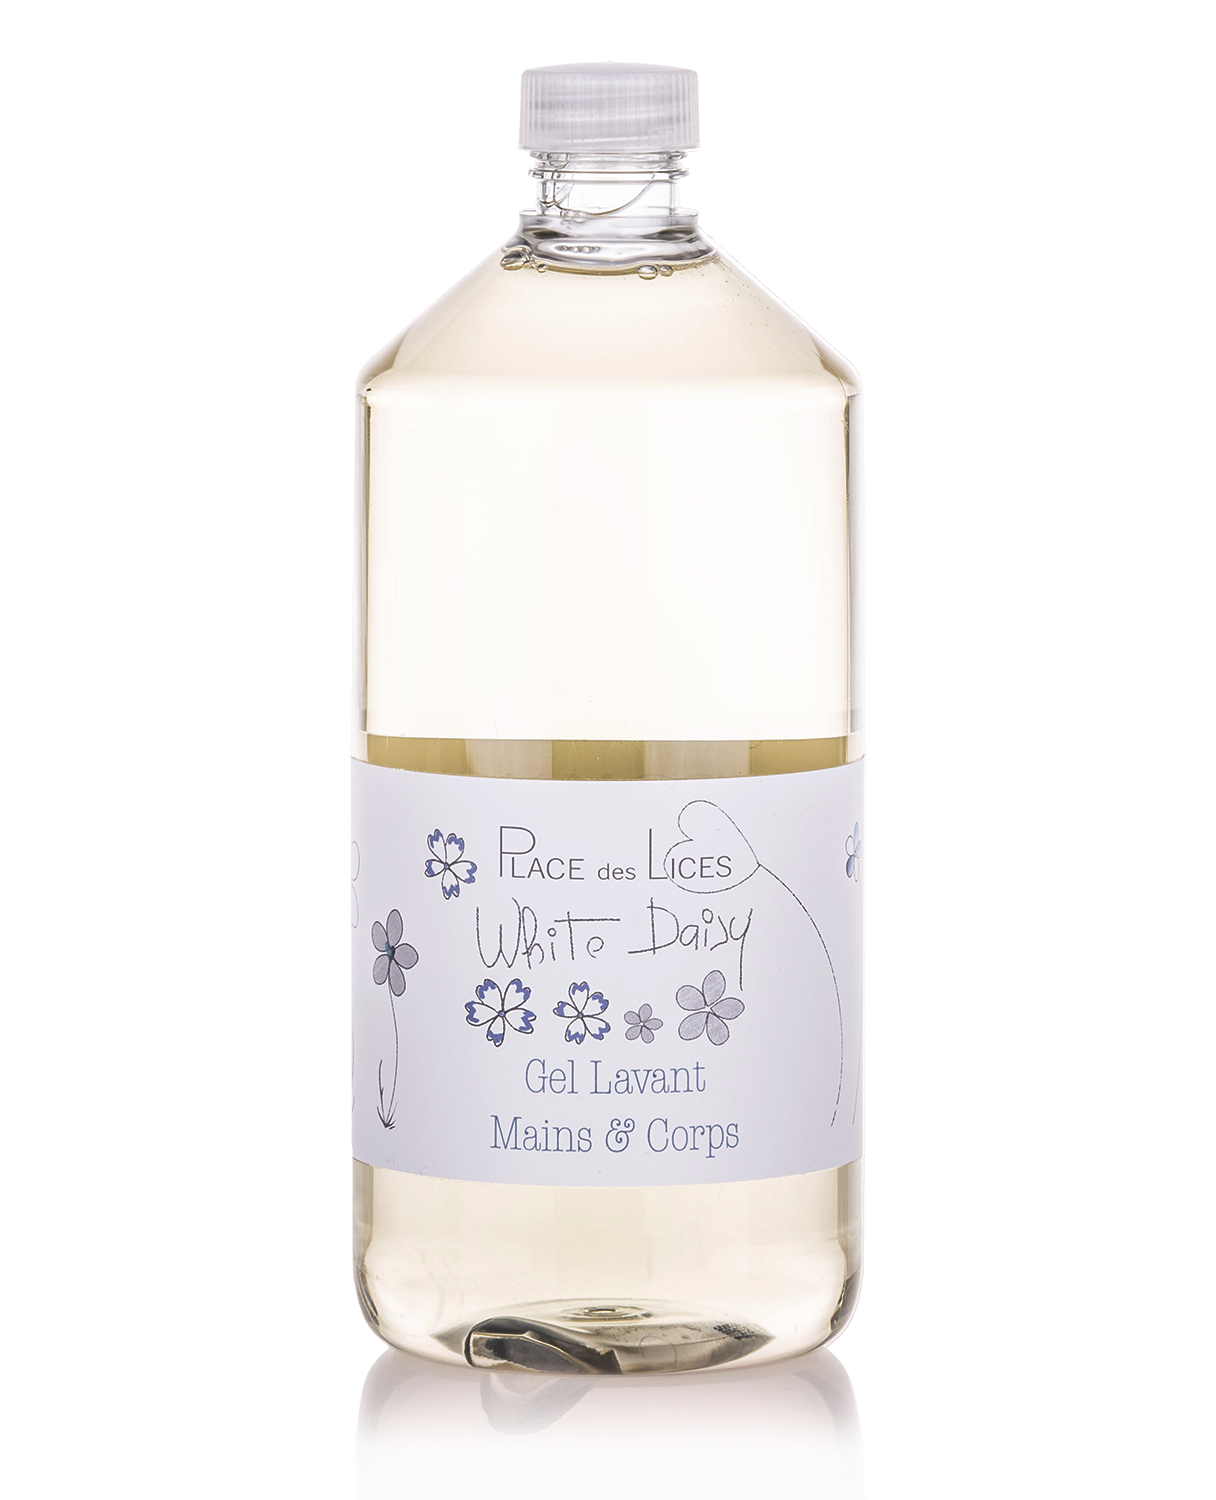 White Daisy liquid soap refill Place des Lices